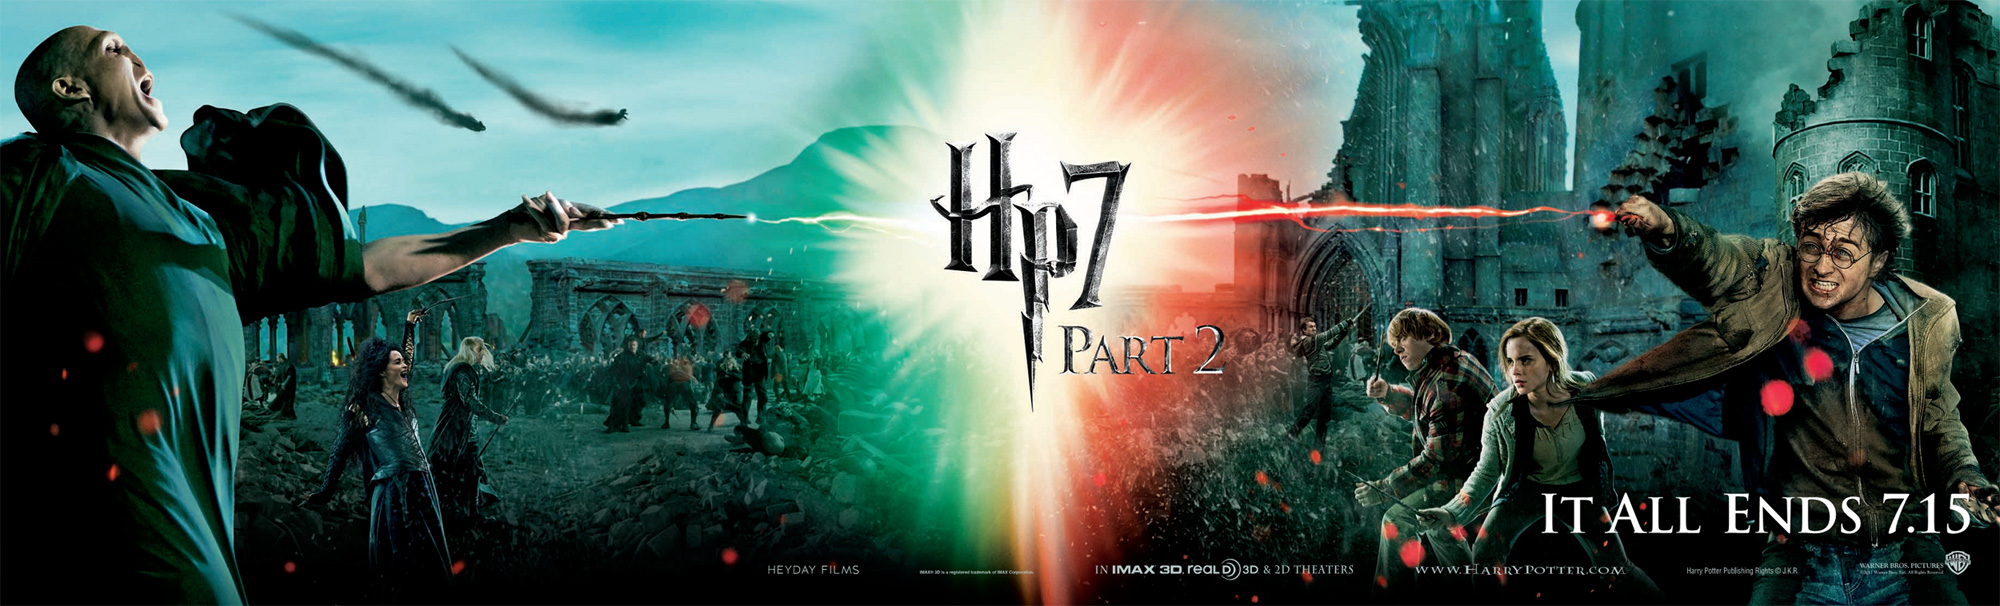 HARRY POTTER AND THE DEATHLY HALLOWS Part 2 Banner